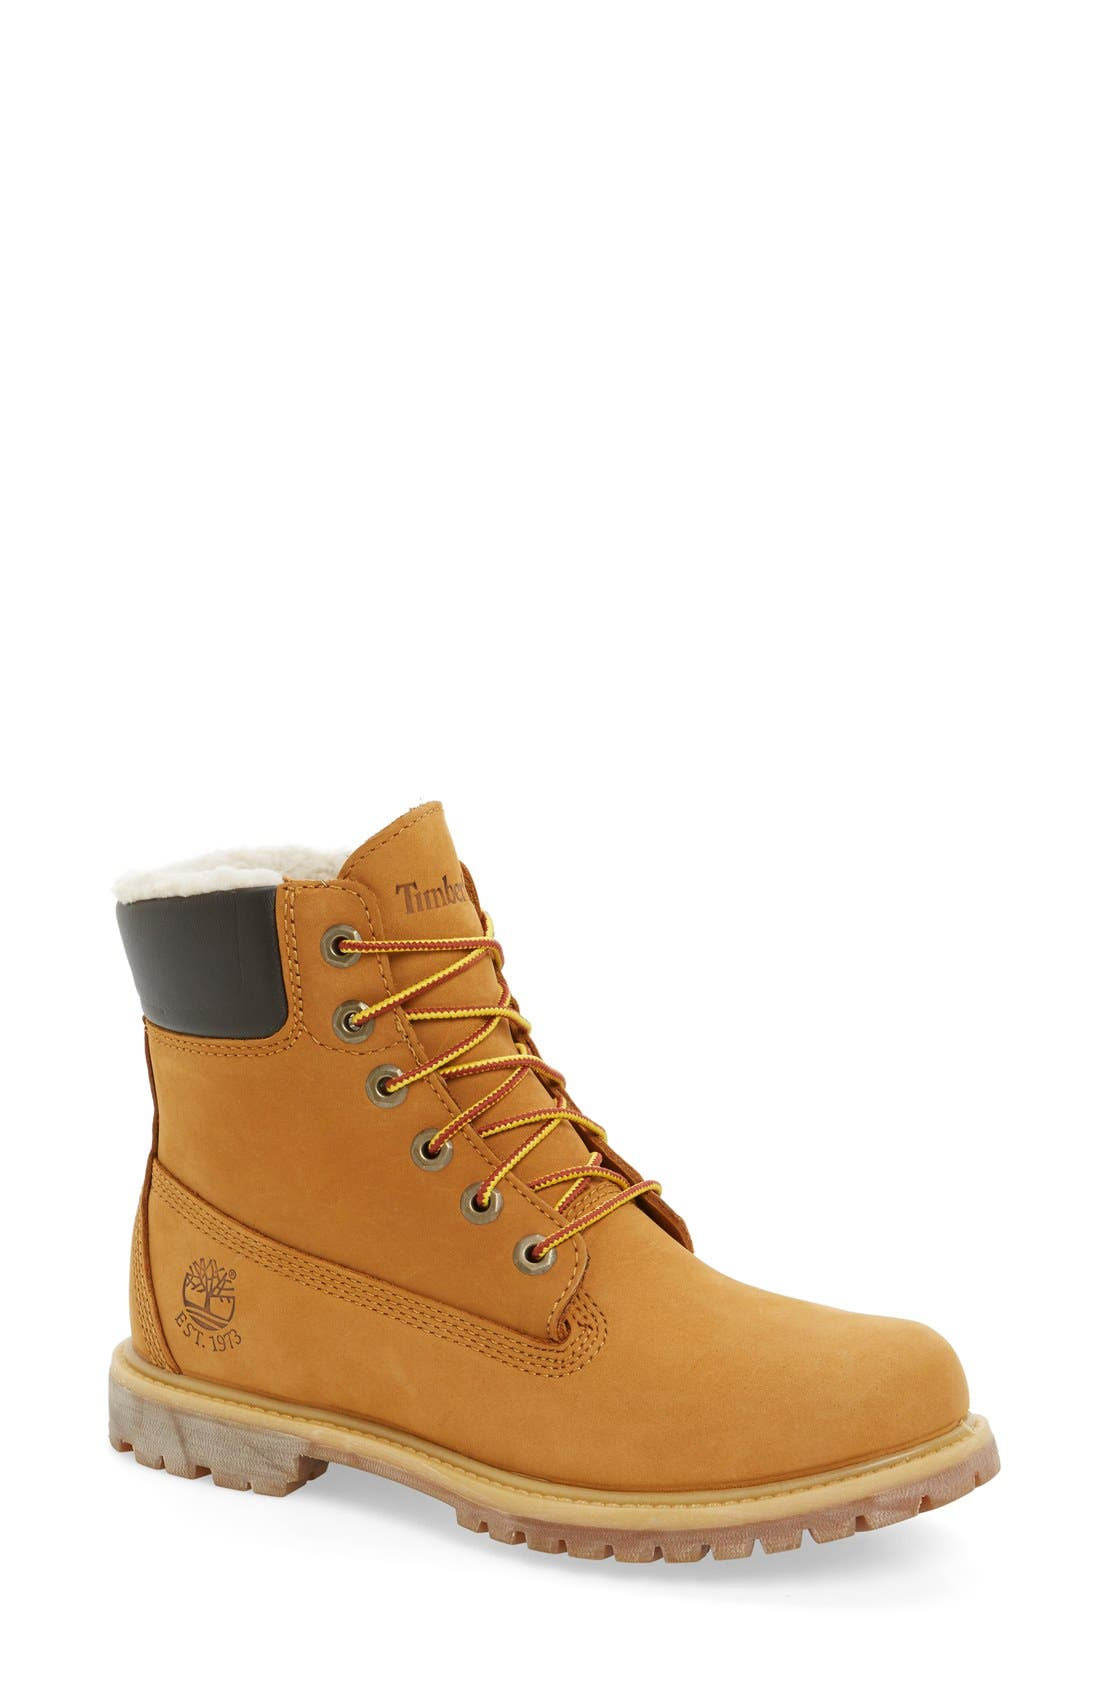 Timberland 6 Inch Waterproof Boot (Women)